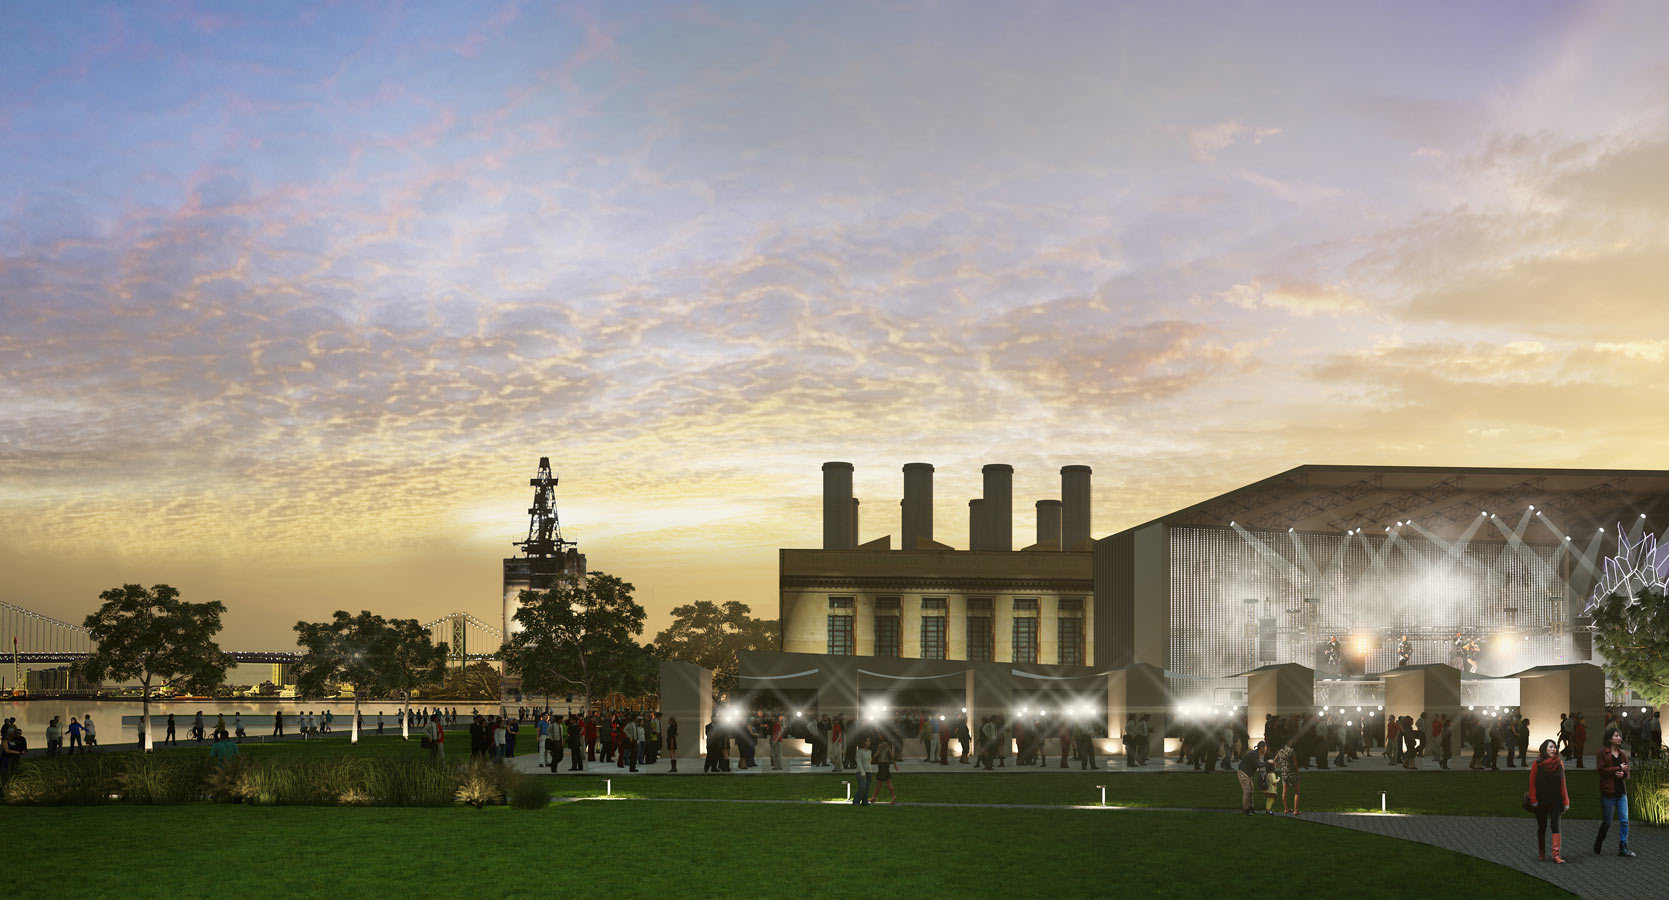 <p>The plan proposes an adaptive reuse of the historic Delaware Generating Station, a power plant next to Penn Treaty District, and envisions redeveloping it for a vibrant mix of cultural, museum, arhicval, office, studio, gallery, retails, and entertainment uses.</p>